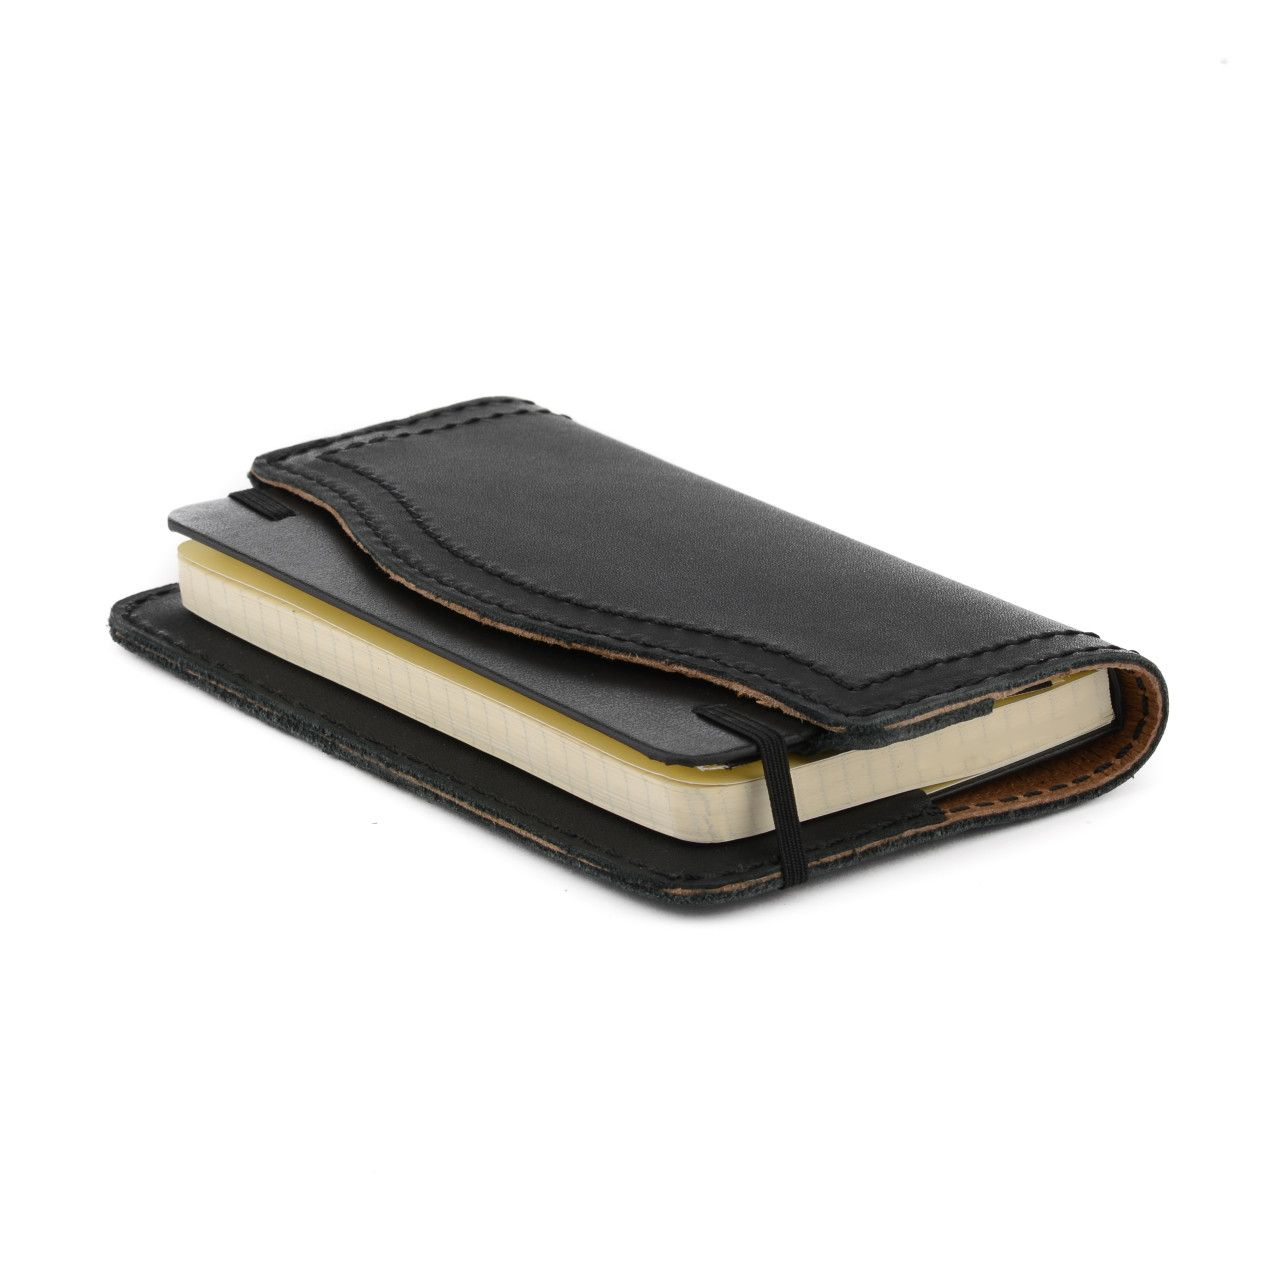 leather notebook cover small in black leather